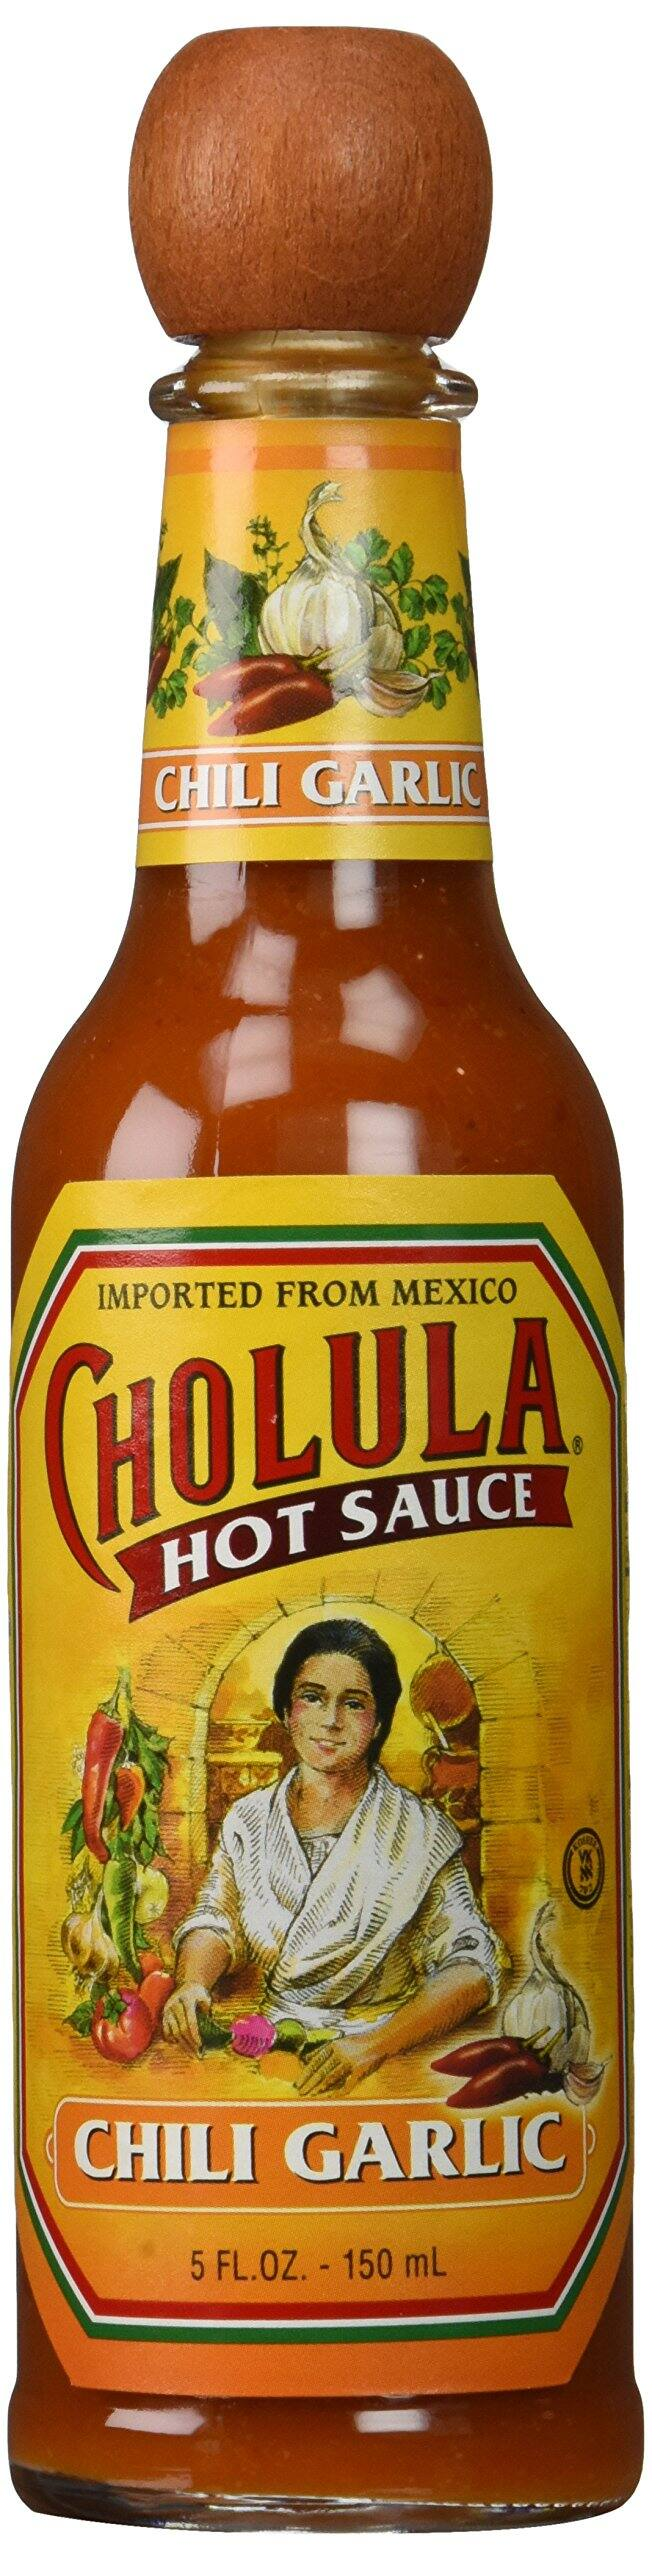 Cholula Green Pepper Hot Sauce 5 Fl Oz (Pack of 4) $10.76 sss eligible @ amazon